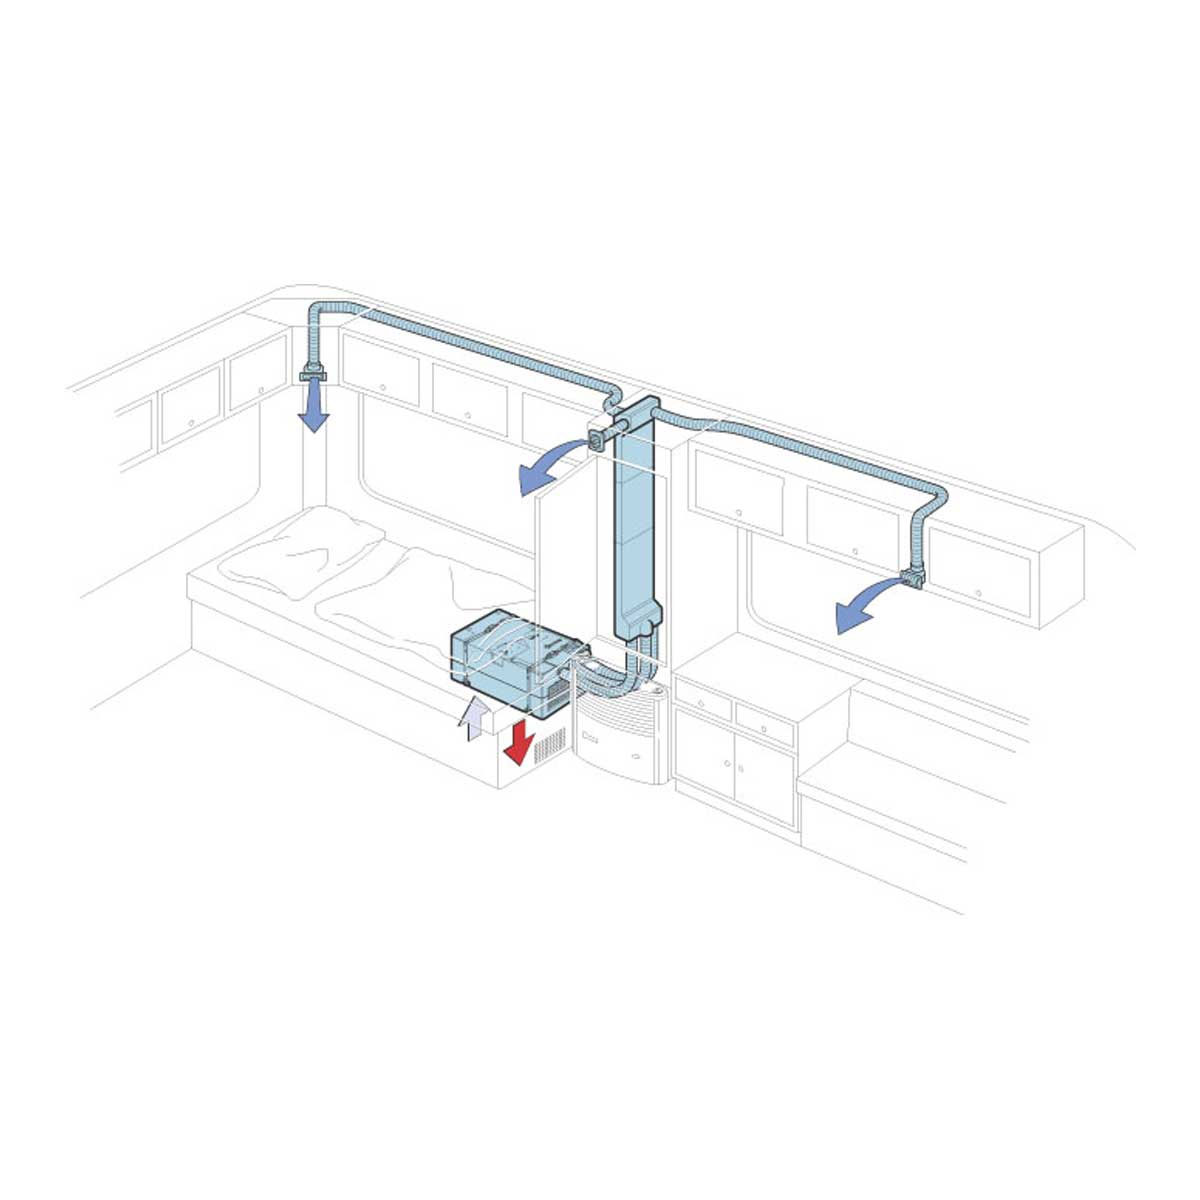 The luxury solution provides extreme living and sleeping comfort with the individually extendible cold air system